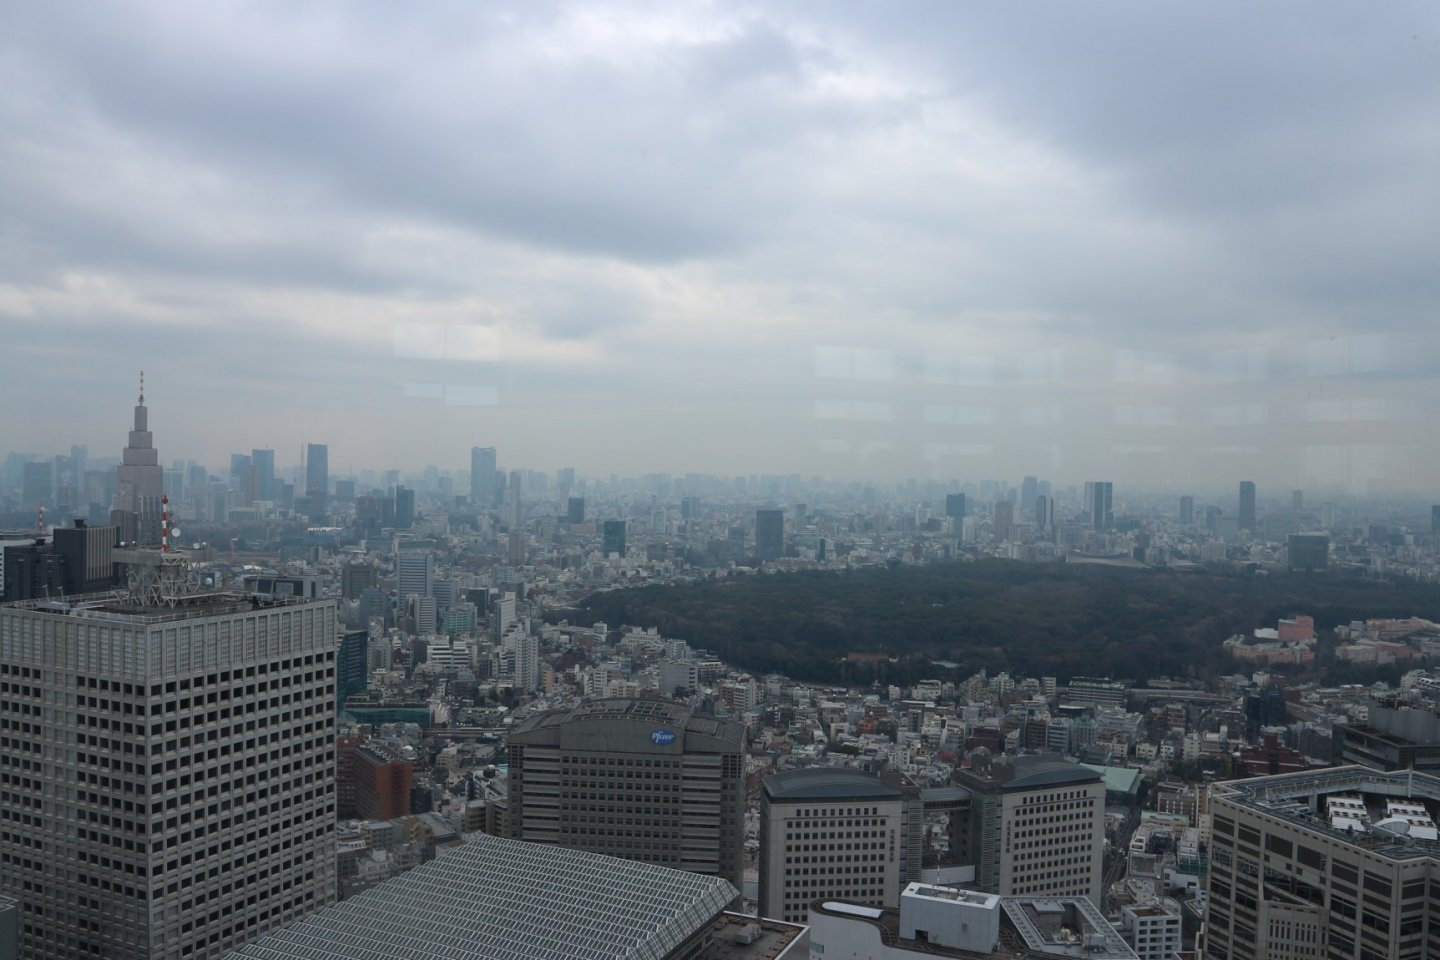 The View from the Tokyo Metropolian Building